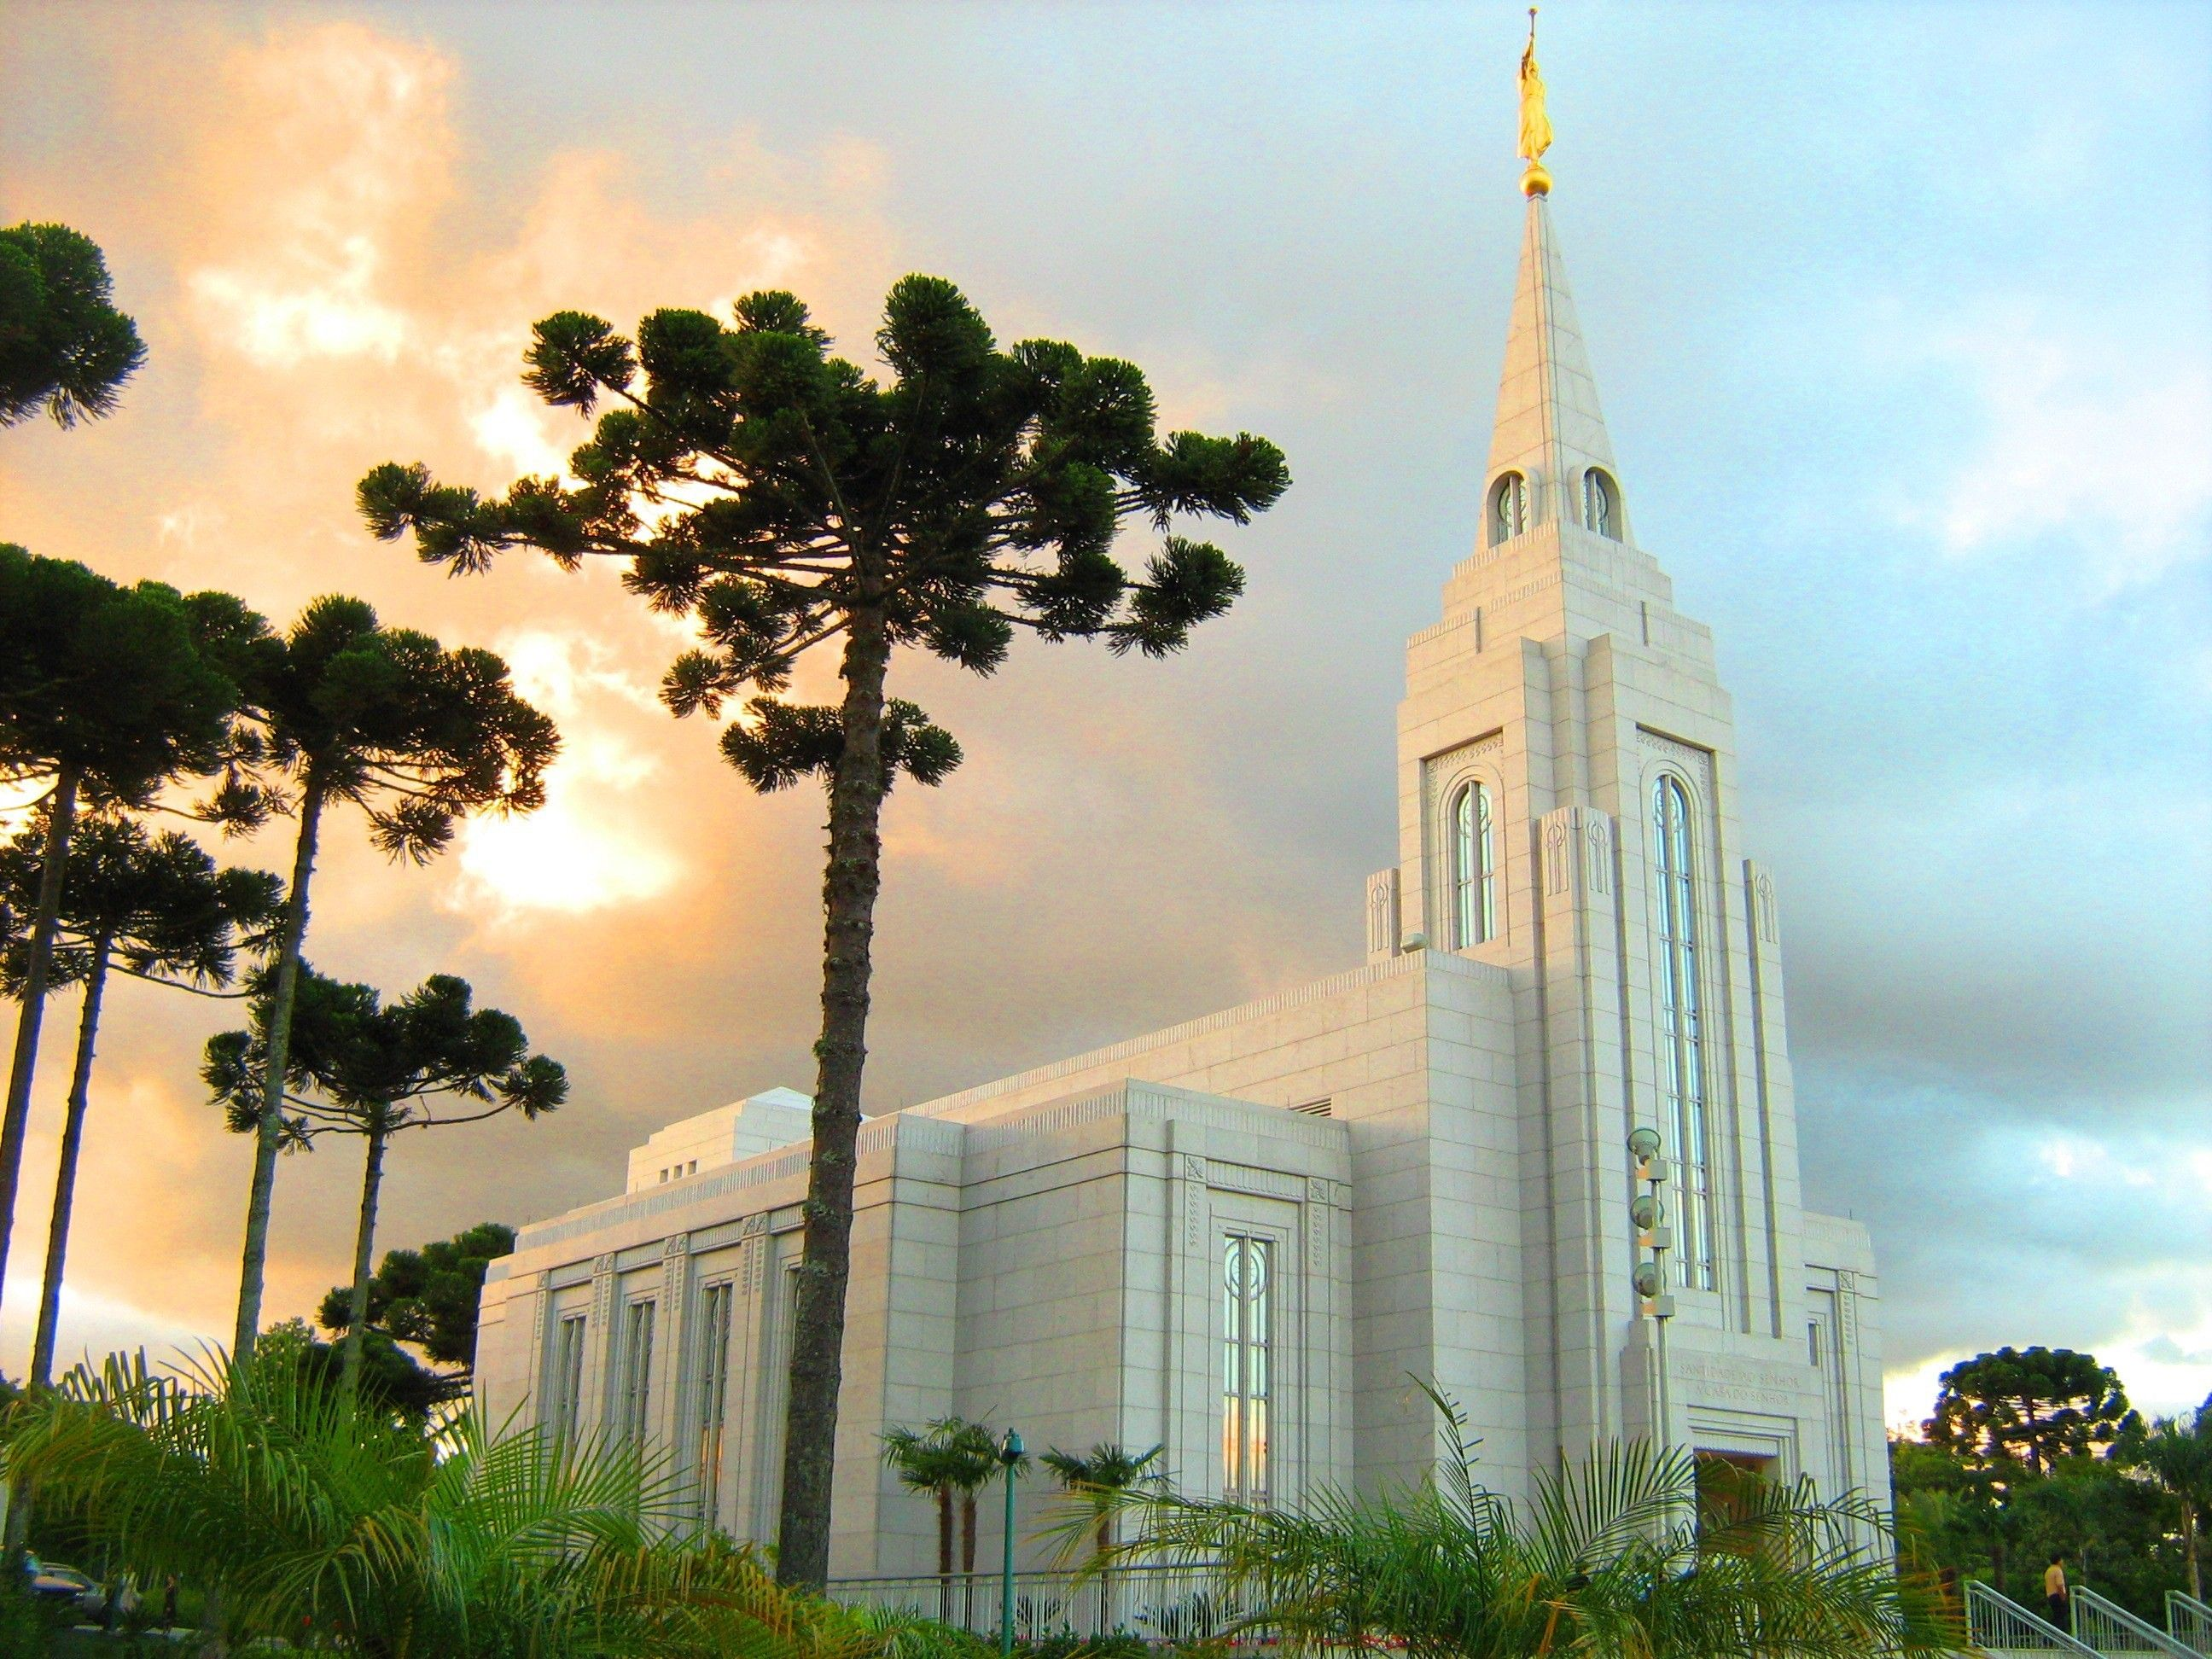 The Curitiba Brazil Temple at sunset, including entrance and scenery.